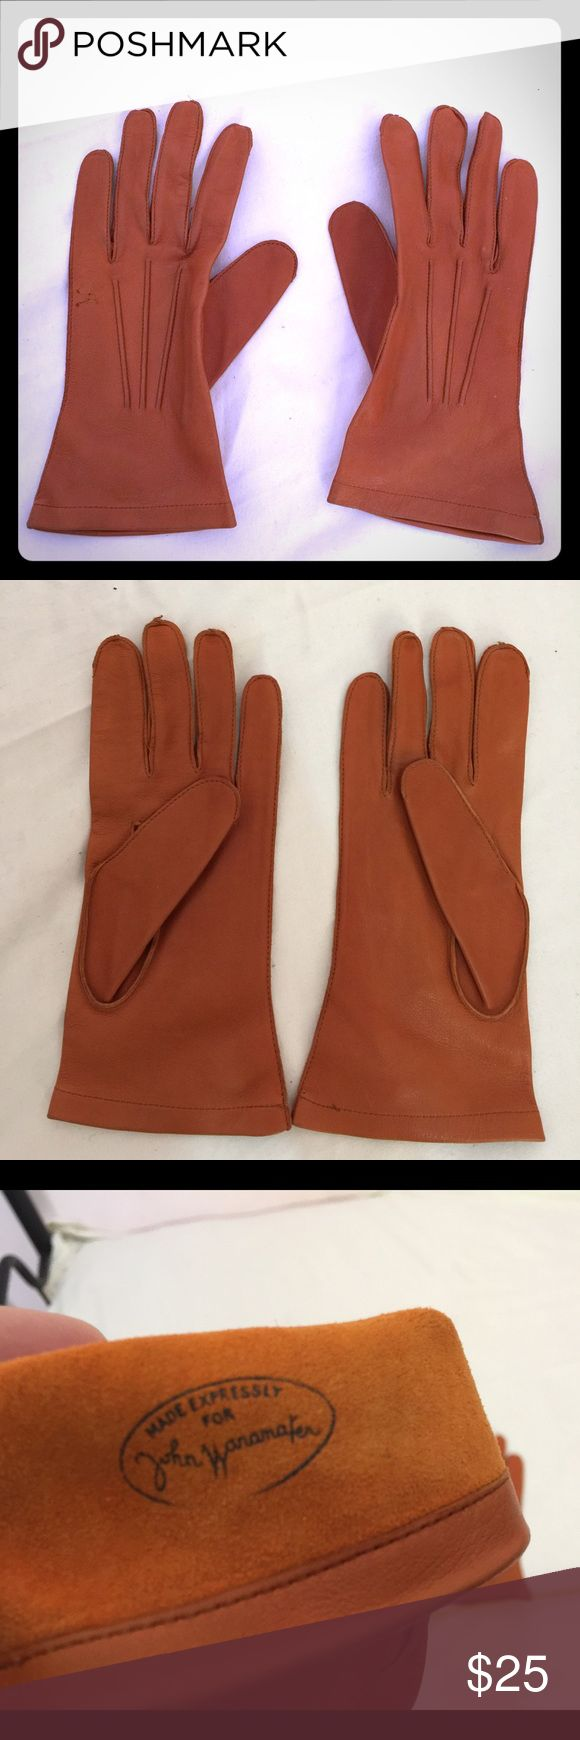 Ladies leather gloves designer - Vintage Soft Brown Leather Gloves John Wanamaker Vintage Ladies Soft Brown Tan Leather Gloves Rare From